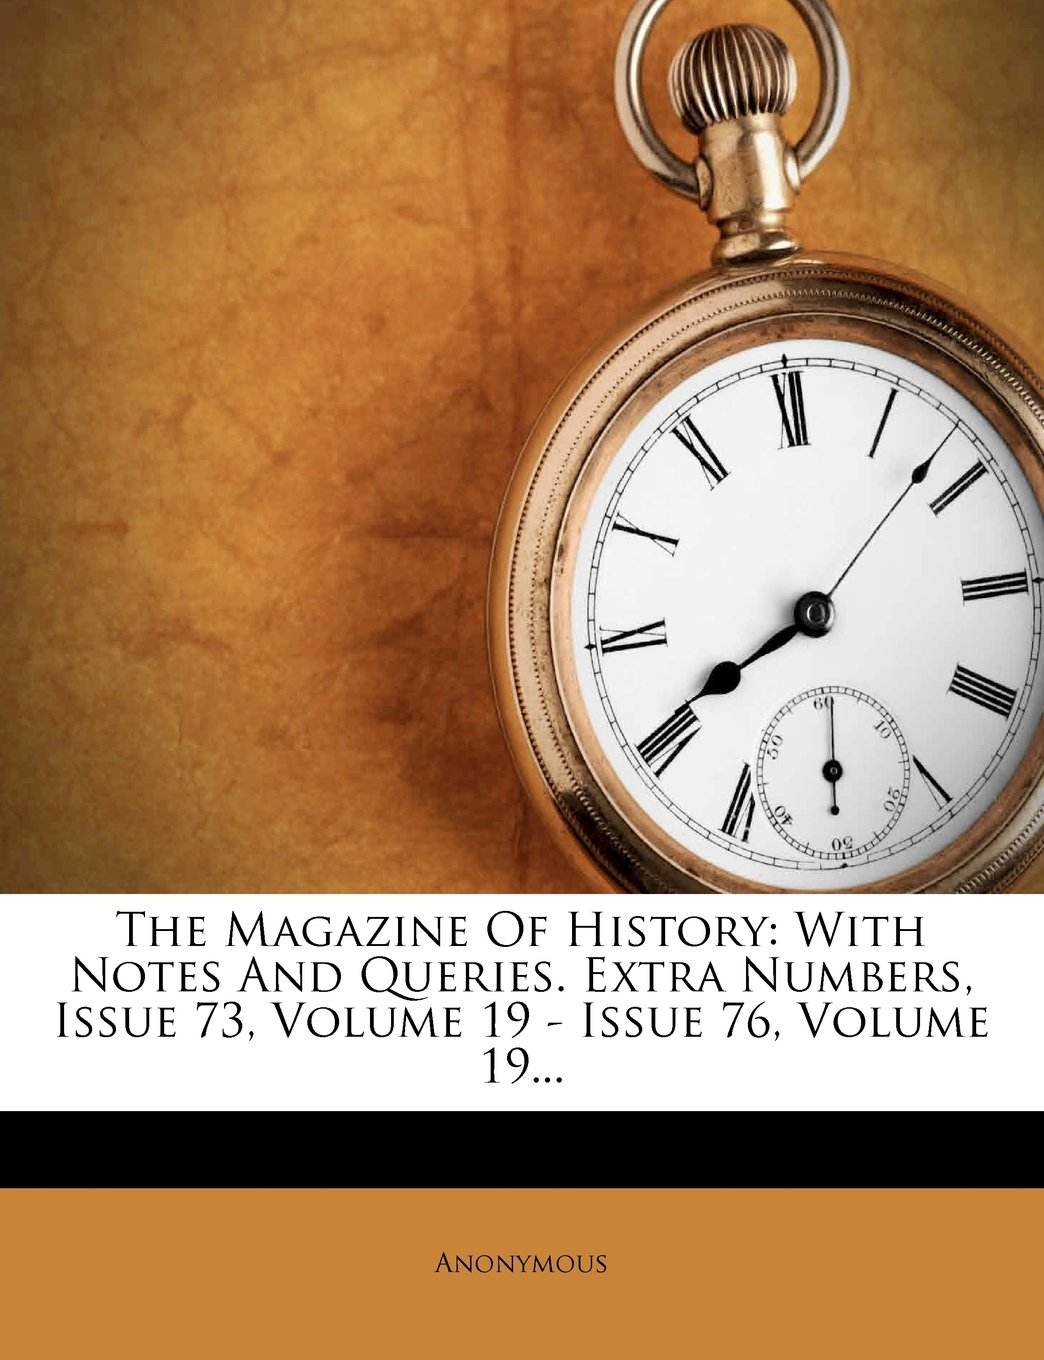 The Magazine Of History: With Notes And Queries. Extra Numbers, Issue 73, Volume 19 - Issue 76, Volume 19... PDF